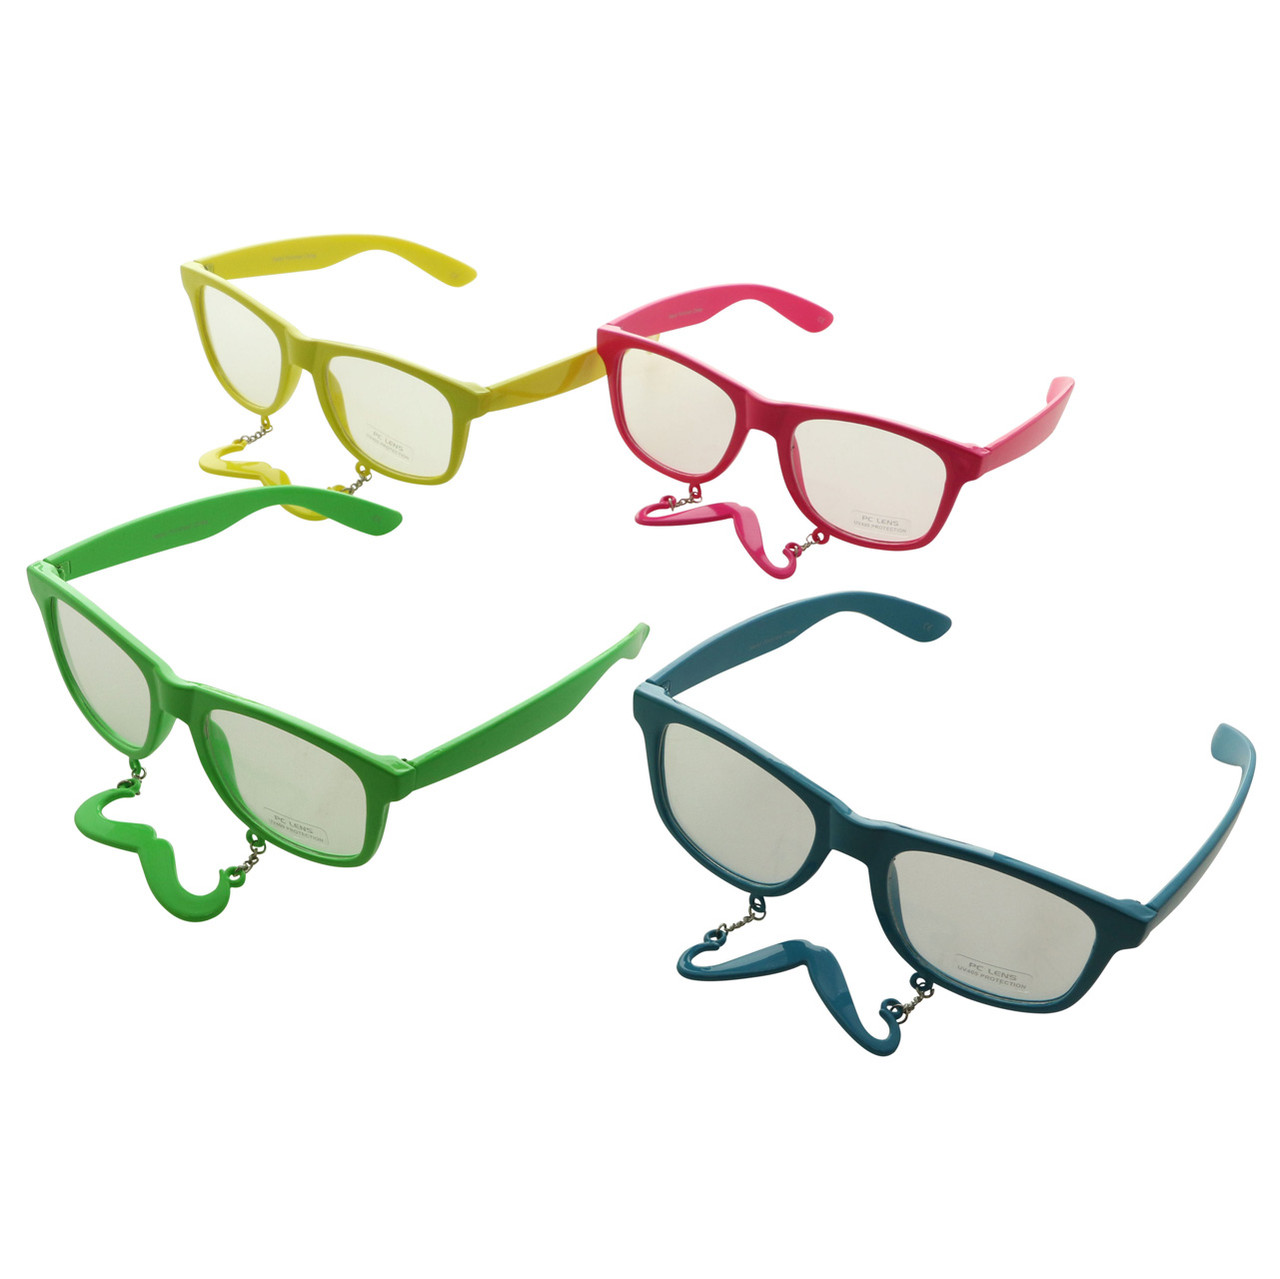 UV 400  Funny Mustache Party Sunglasses Polycarbonate Lens Assorted Colors 12SG731MS-CCL